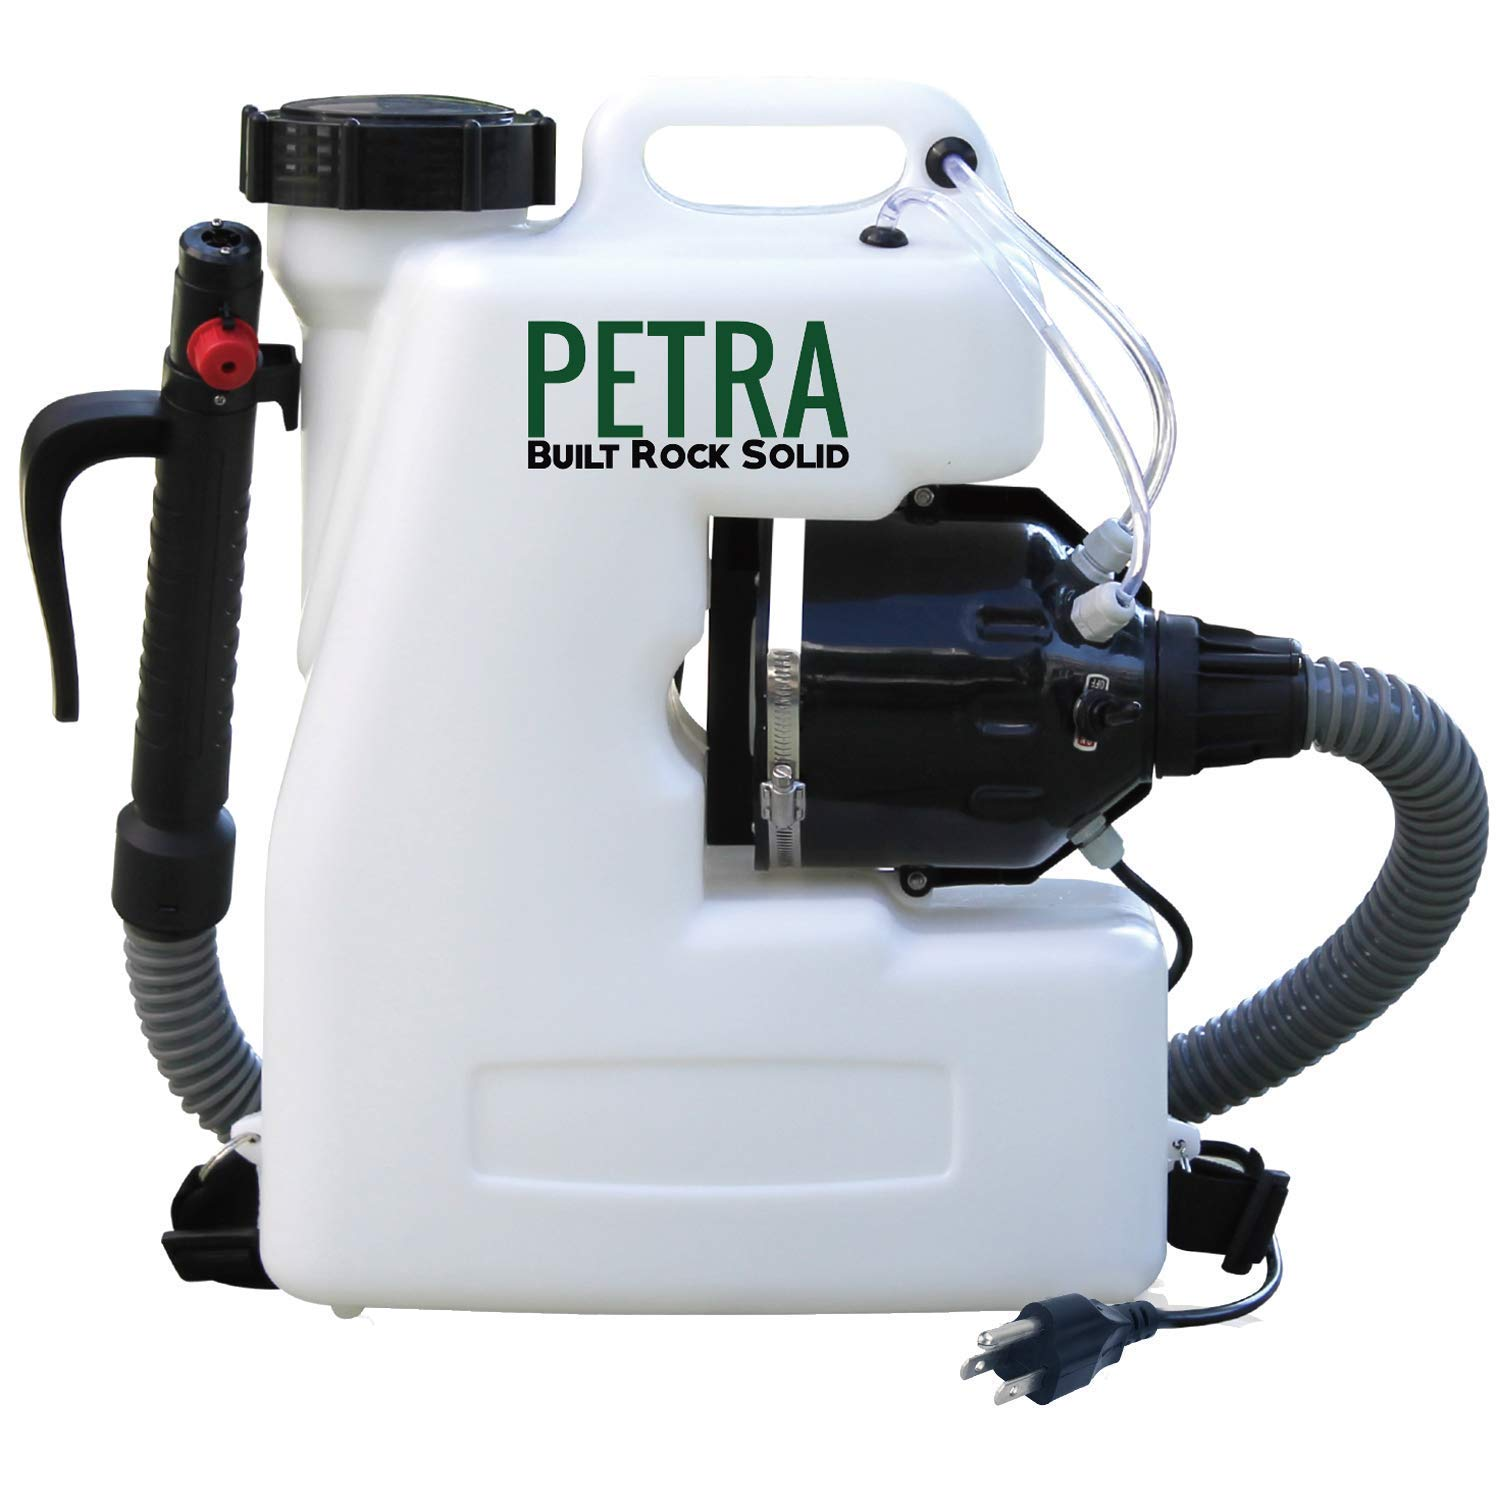 Petra Electric Fogger Atomizer Backpack Sprayer - 4 Gallon Mist Blower with Extended Commercial Hose for Pest & Mold Control – Insect, Bug & Mosquito Fogger (with Premium Comfortable Straps)